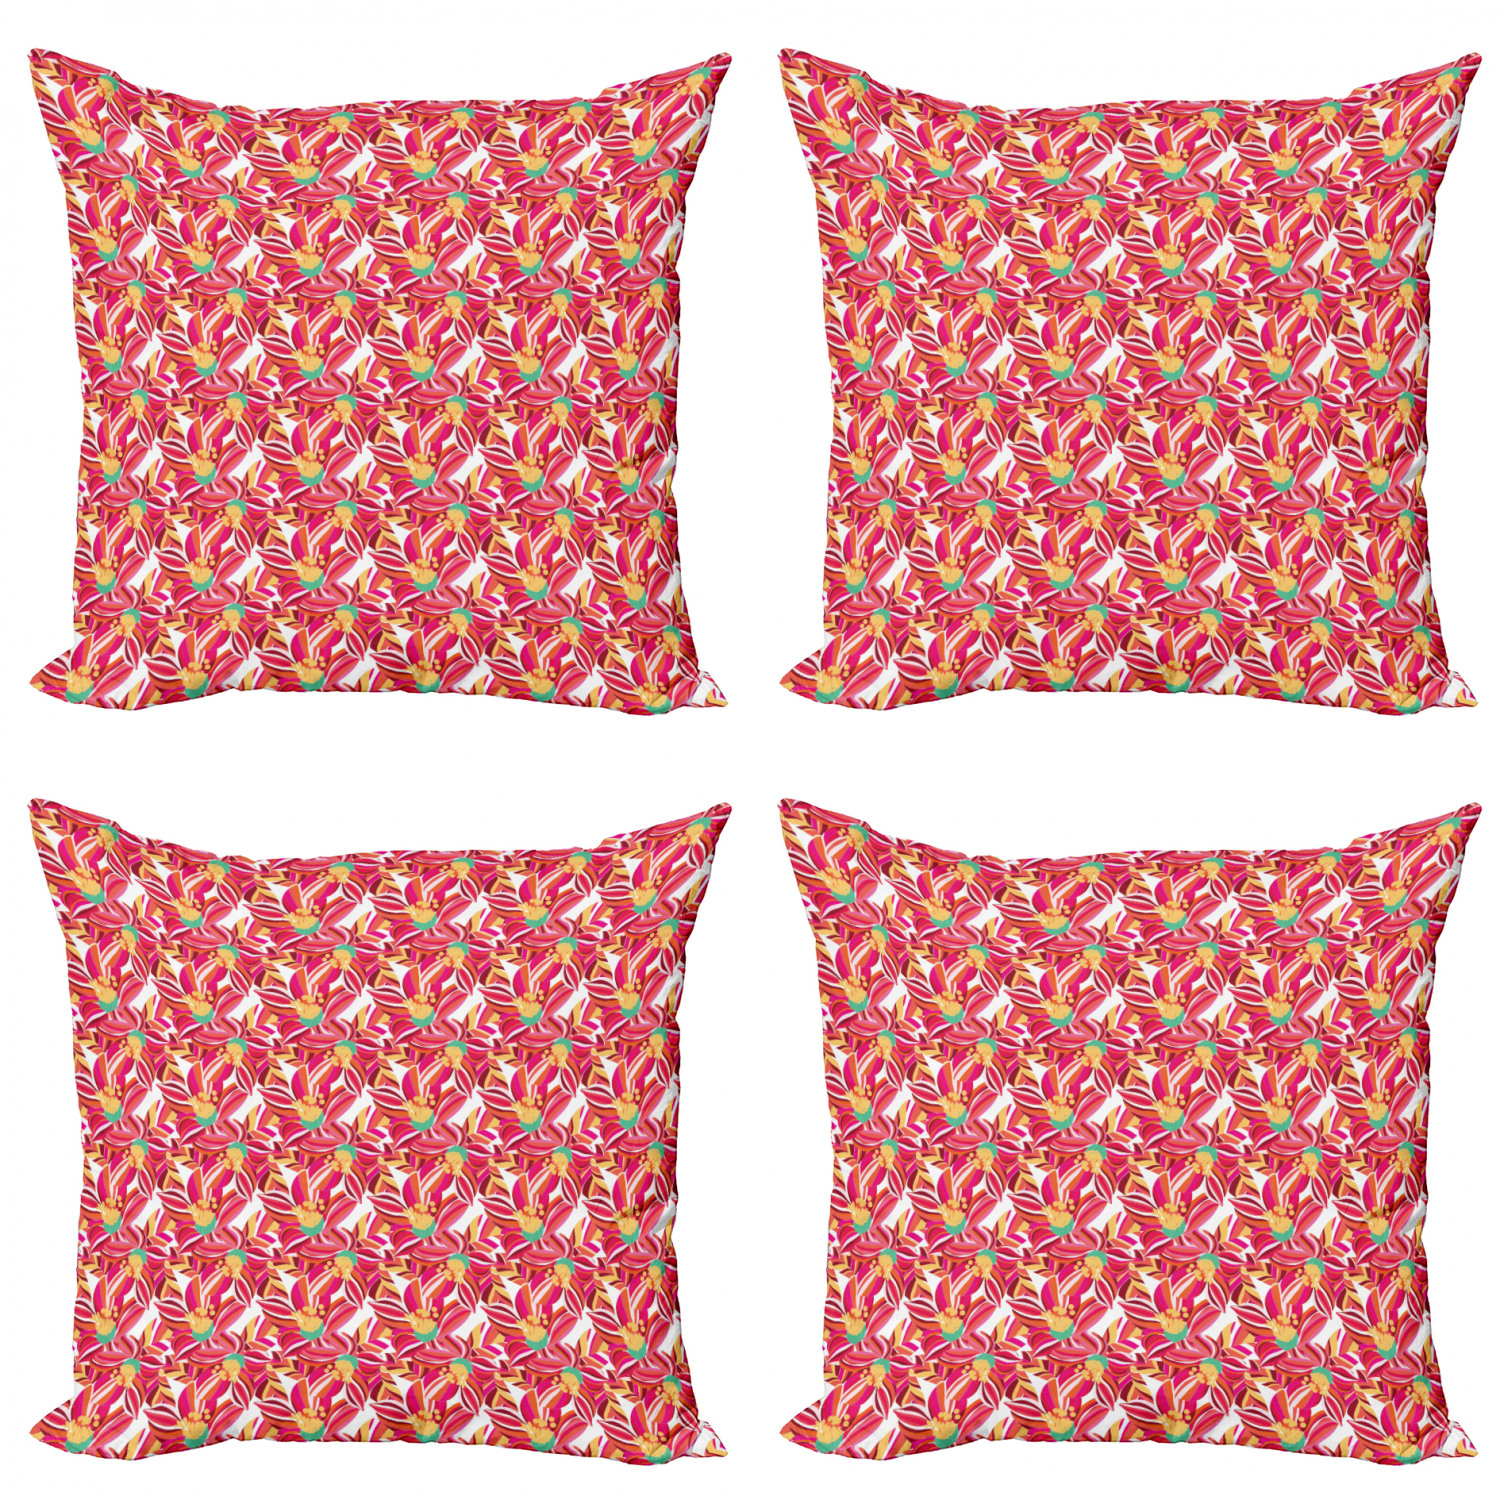 Ambesonne-Floral-Drawings-Cushion-Cover-Set-of-4-for-Couch-and-Bed-in-4-Sizes thumbnail 12